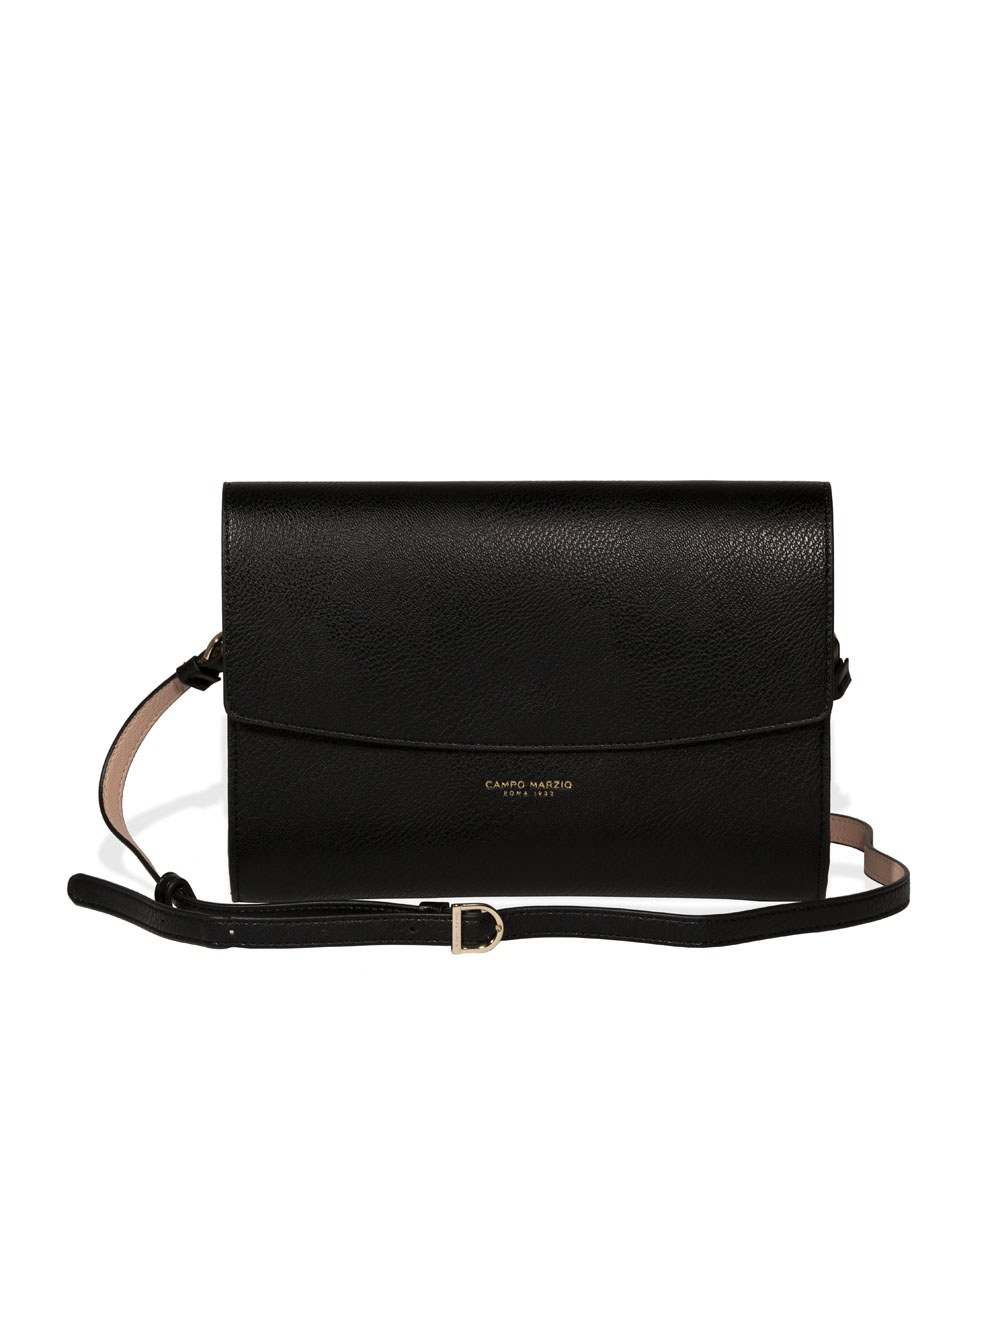 Clutch With Crossbody Strap